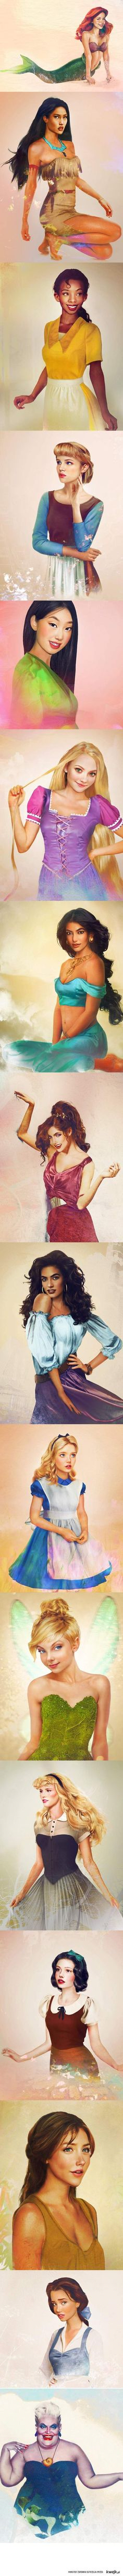 Real Disney Princesses.